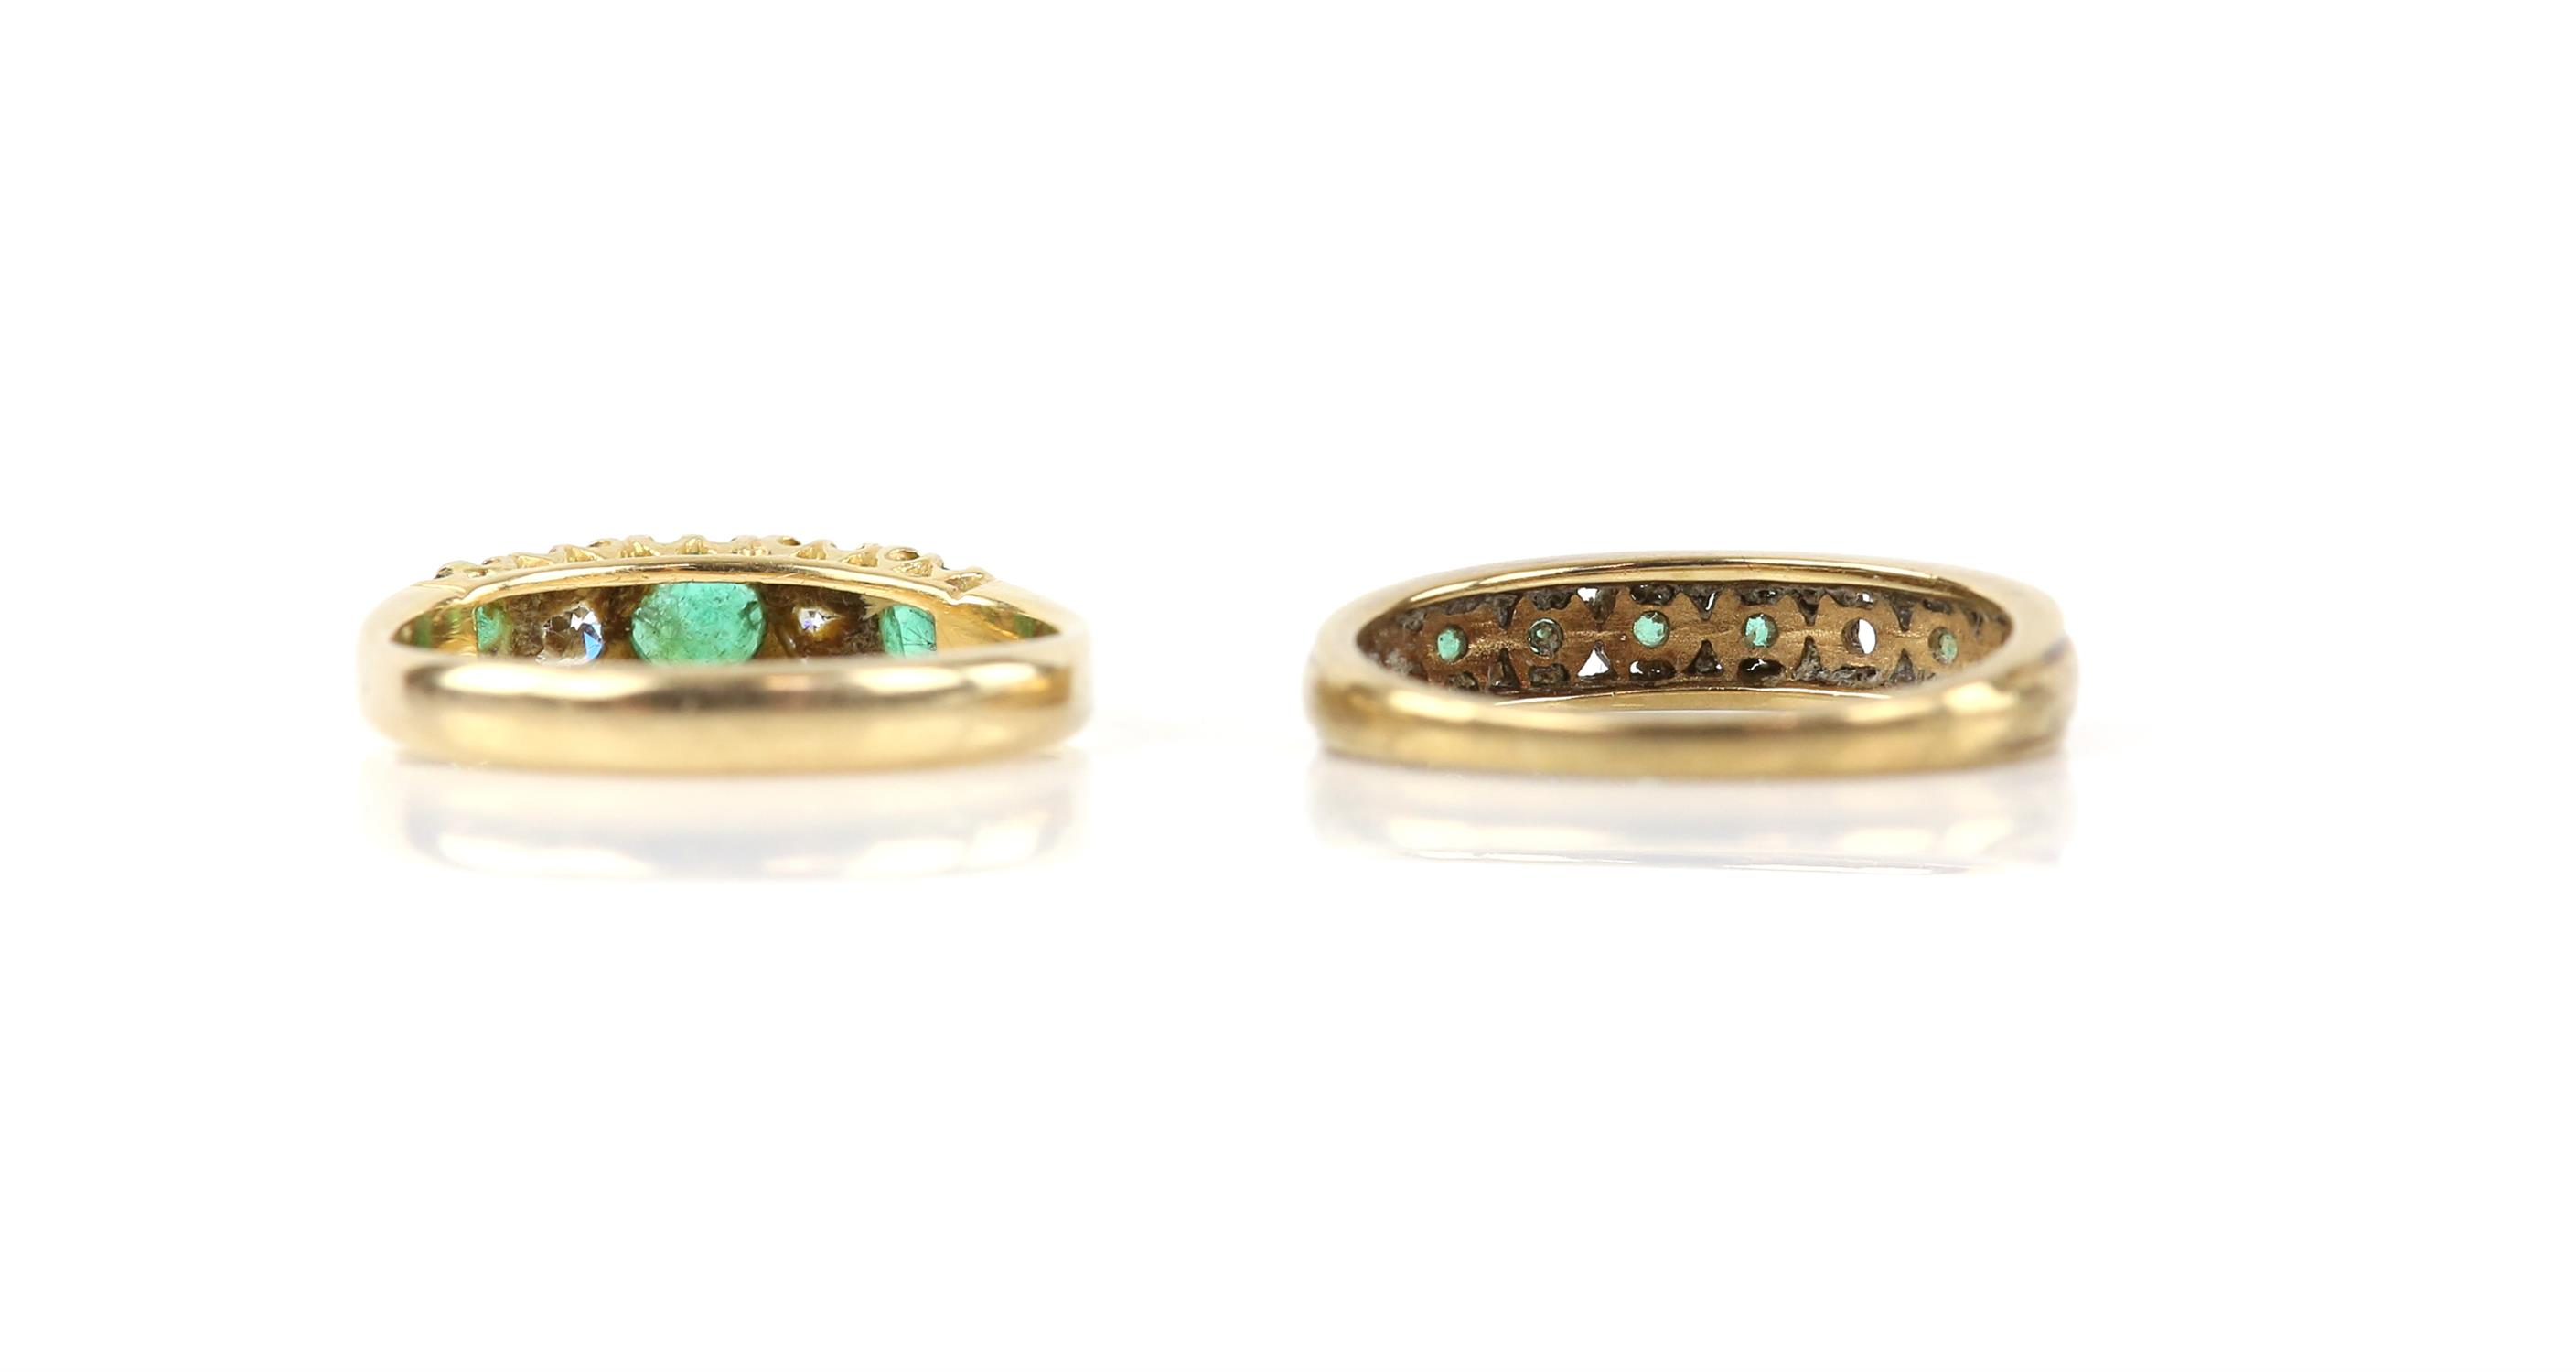 Emerald and diamond five stone ring, set with three round cut emeralds and two round brilliant cut - Image 2 of 2